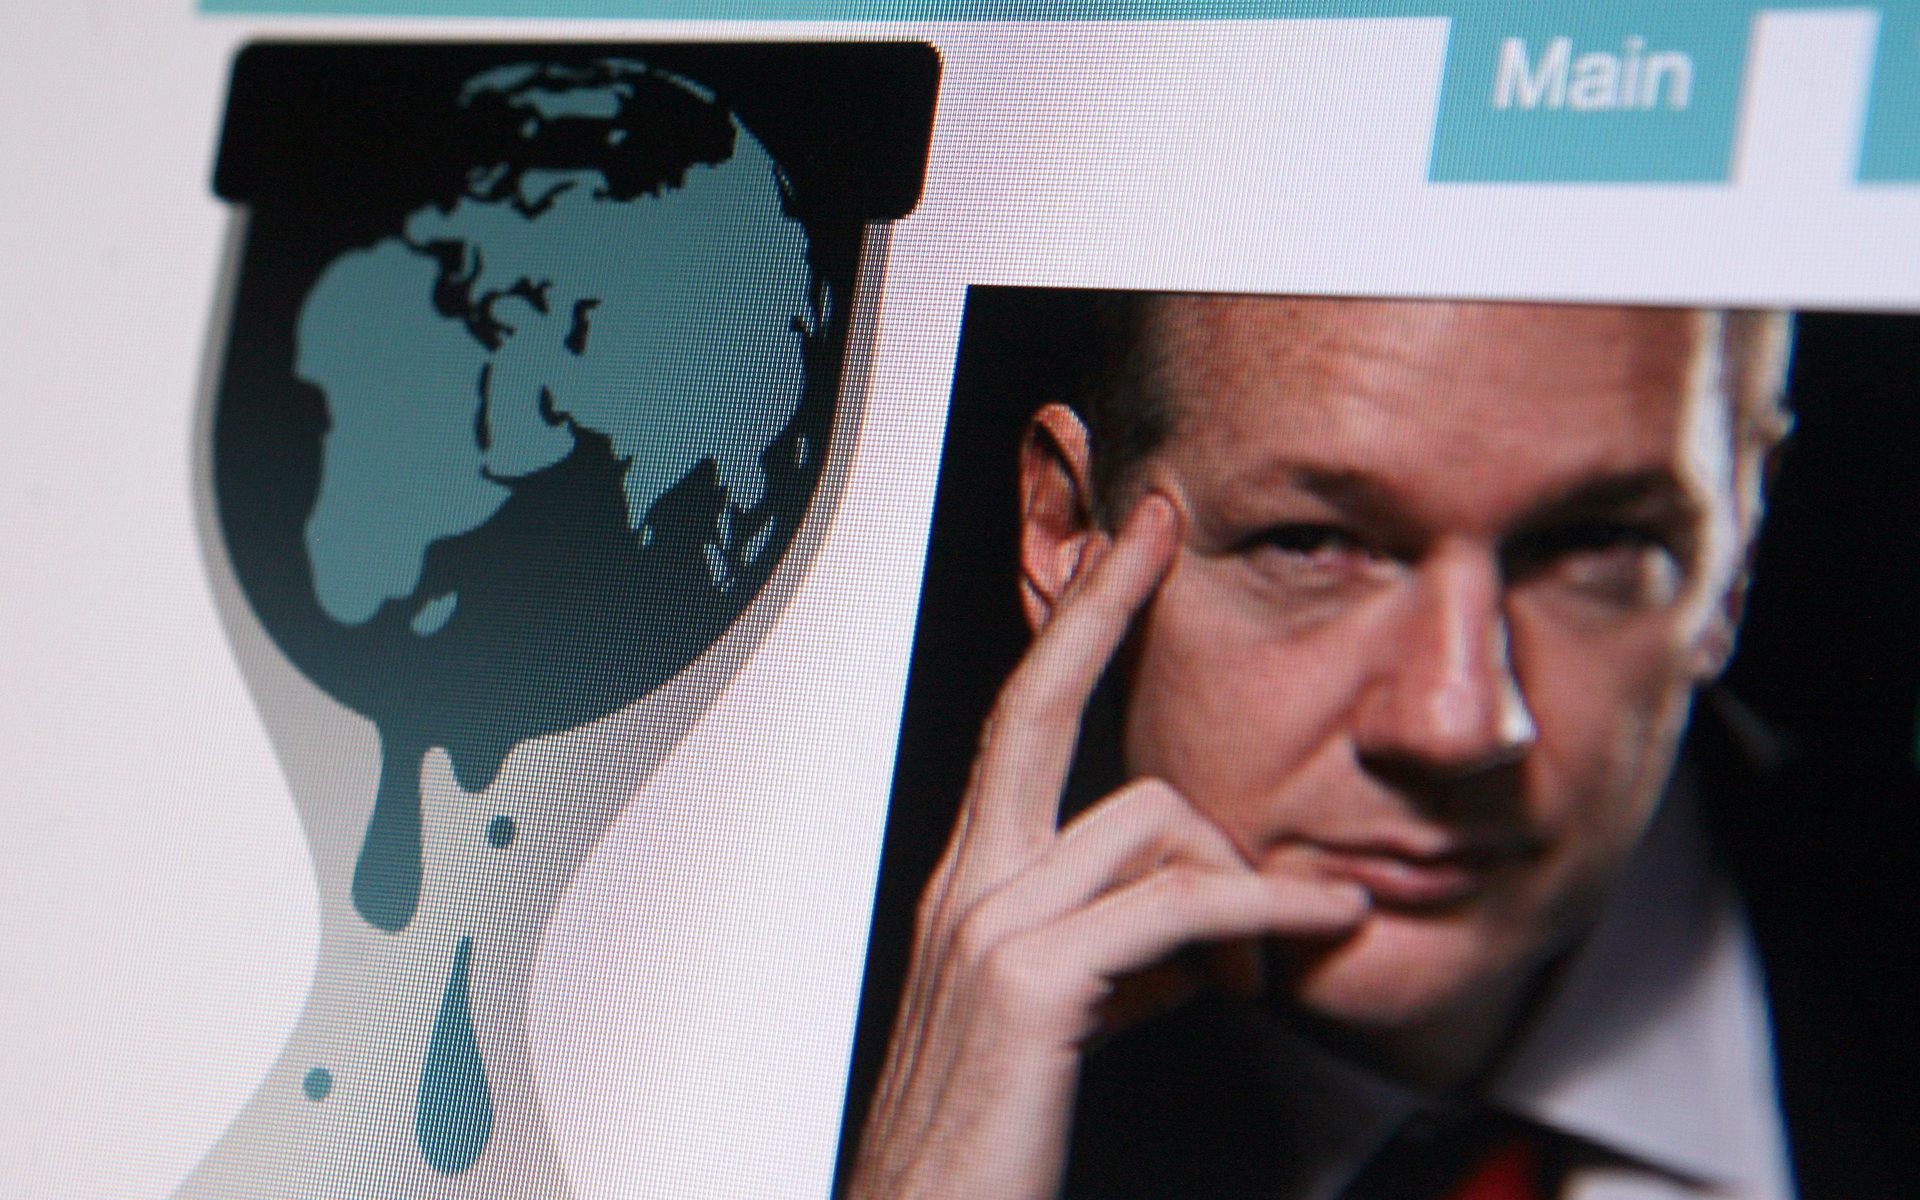 'The Daily Show' recaps WikiLeaks founder Julian Assange's embarrassing arrest